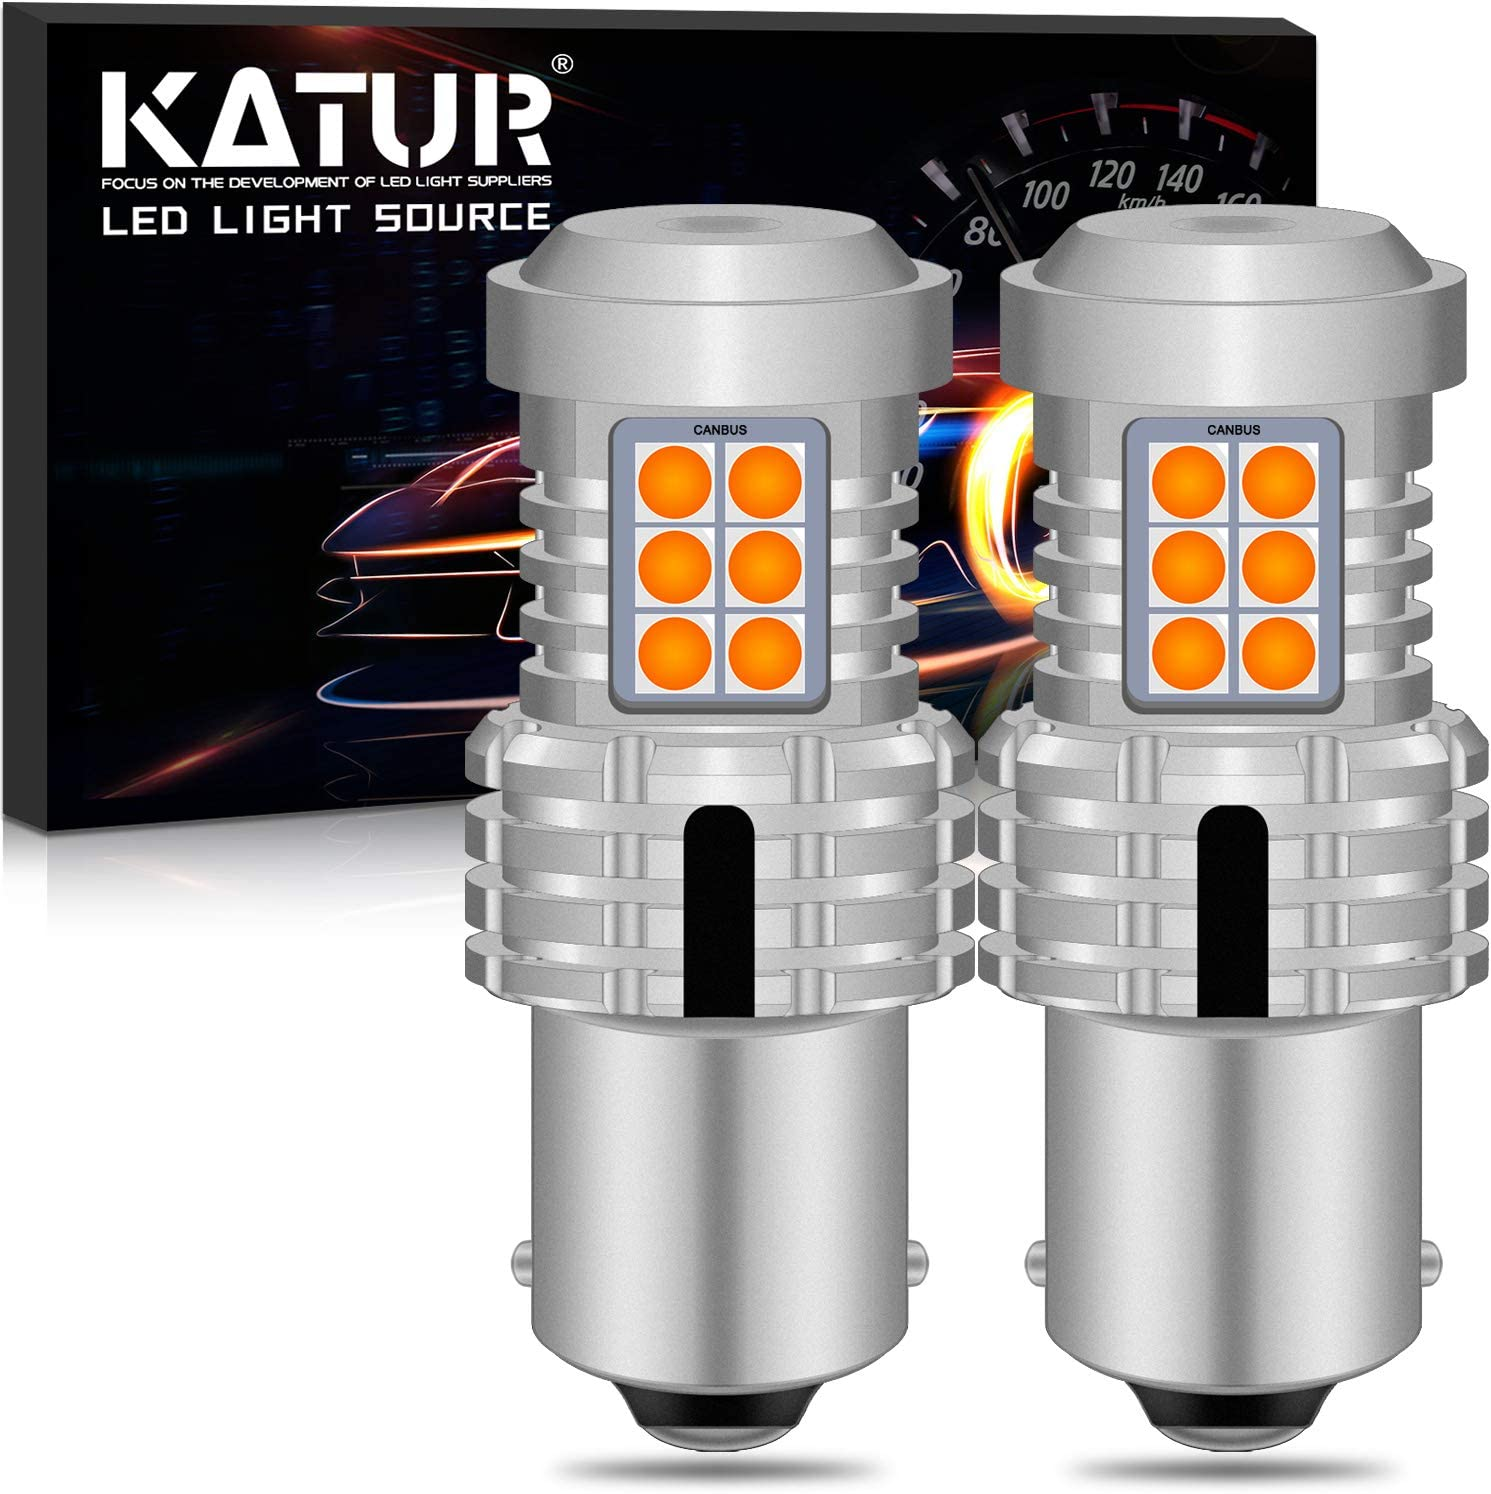 Pack of 2 KATUR 1156 BA15S P21W 7506 LED Bulbs Super Bright 12pcs 3030 /& 8pcs 3020 Chips Canbus Error Free Replace for Turn Signal Reverse Brake Tail Stop Parking RV Lights,Amber Yellow